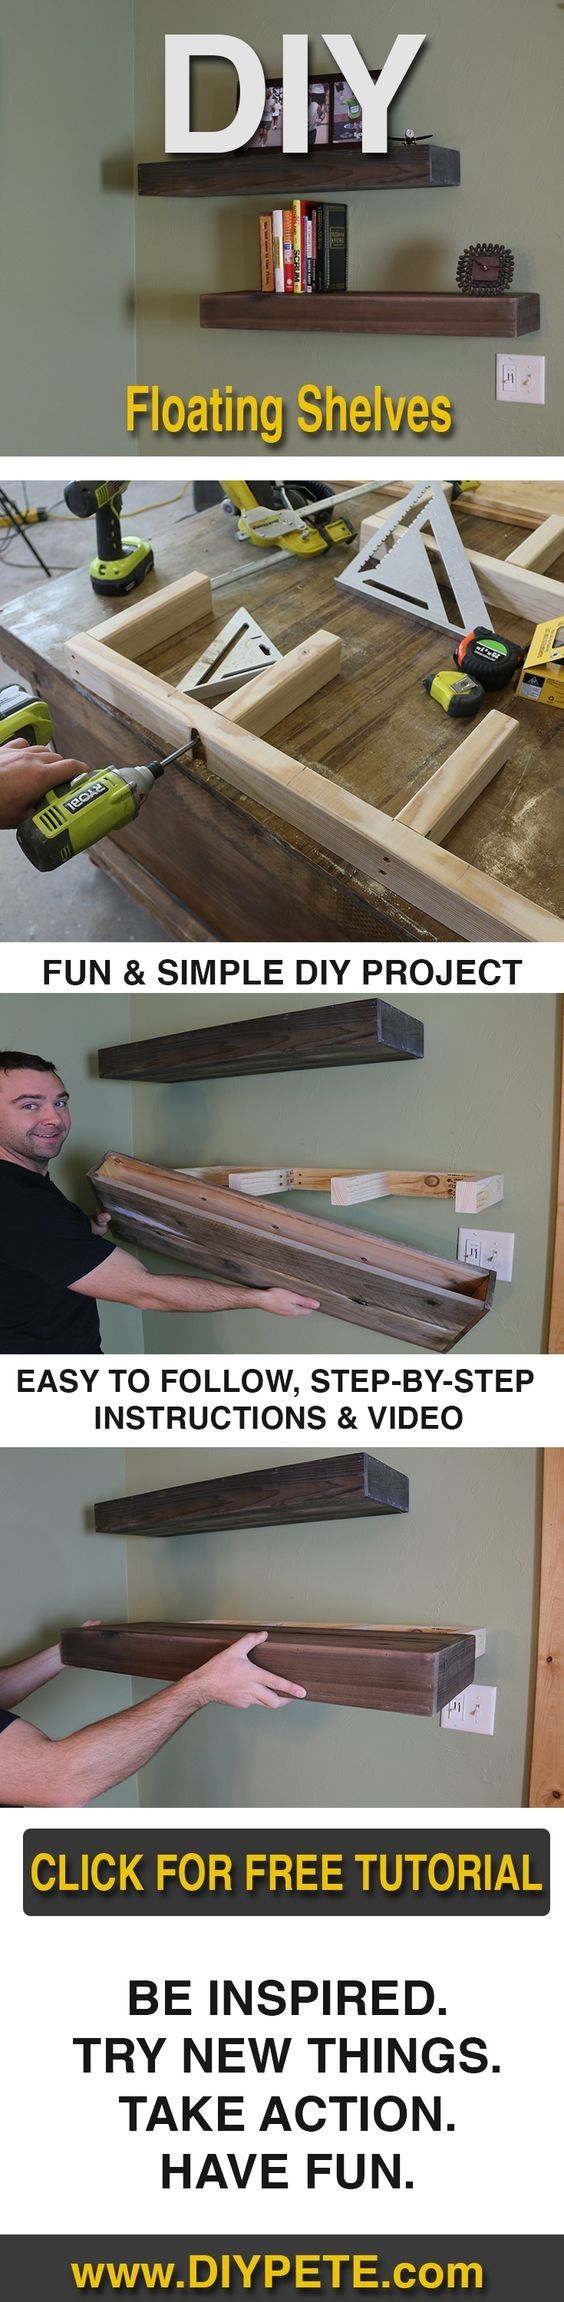 best of the web: how to install floating shelves